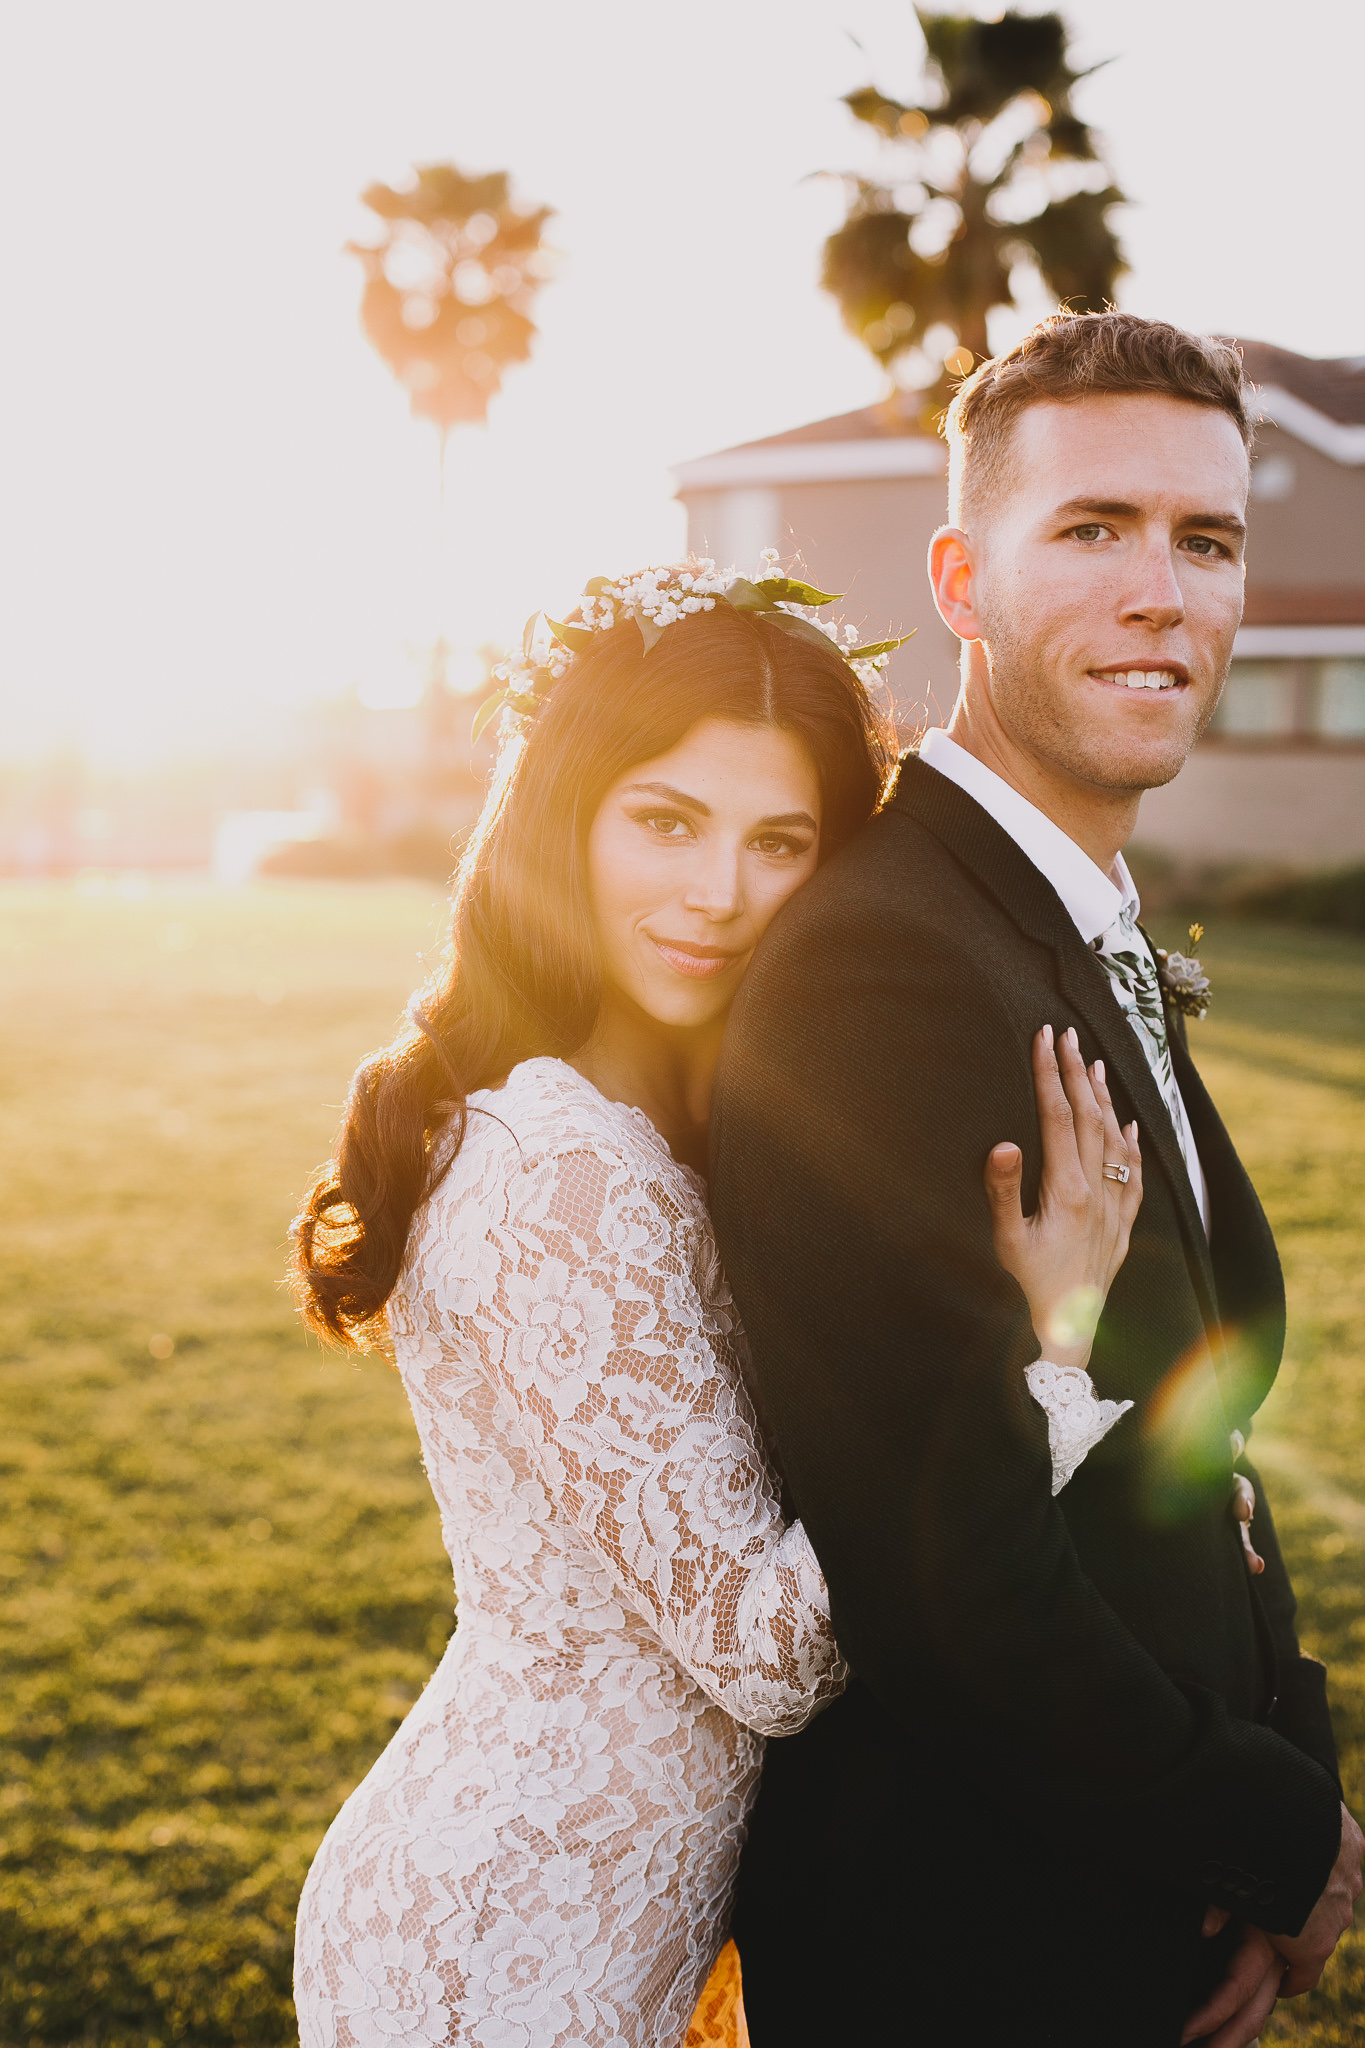 Archer Inspired Photography Lauren and Derek Long Beach Orange County Wedding Elopement-287.jpg